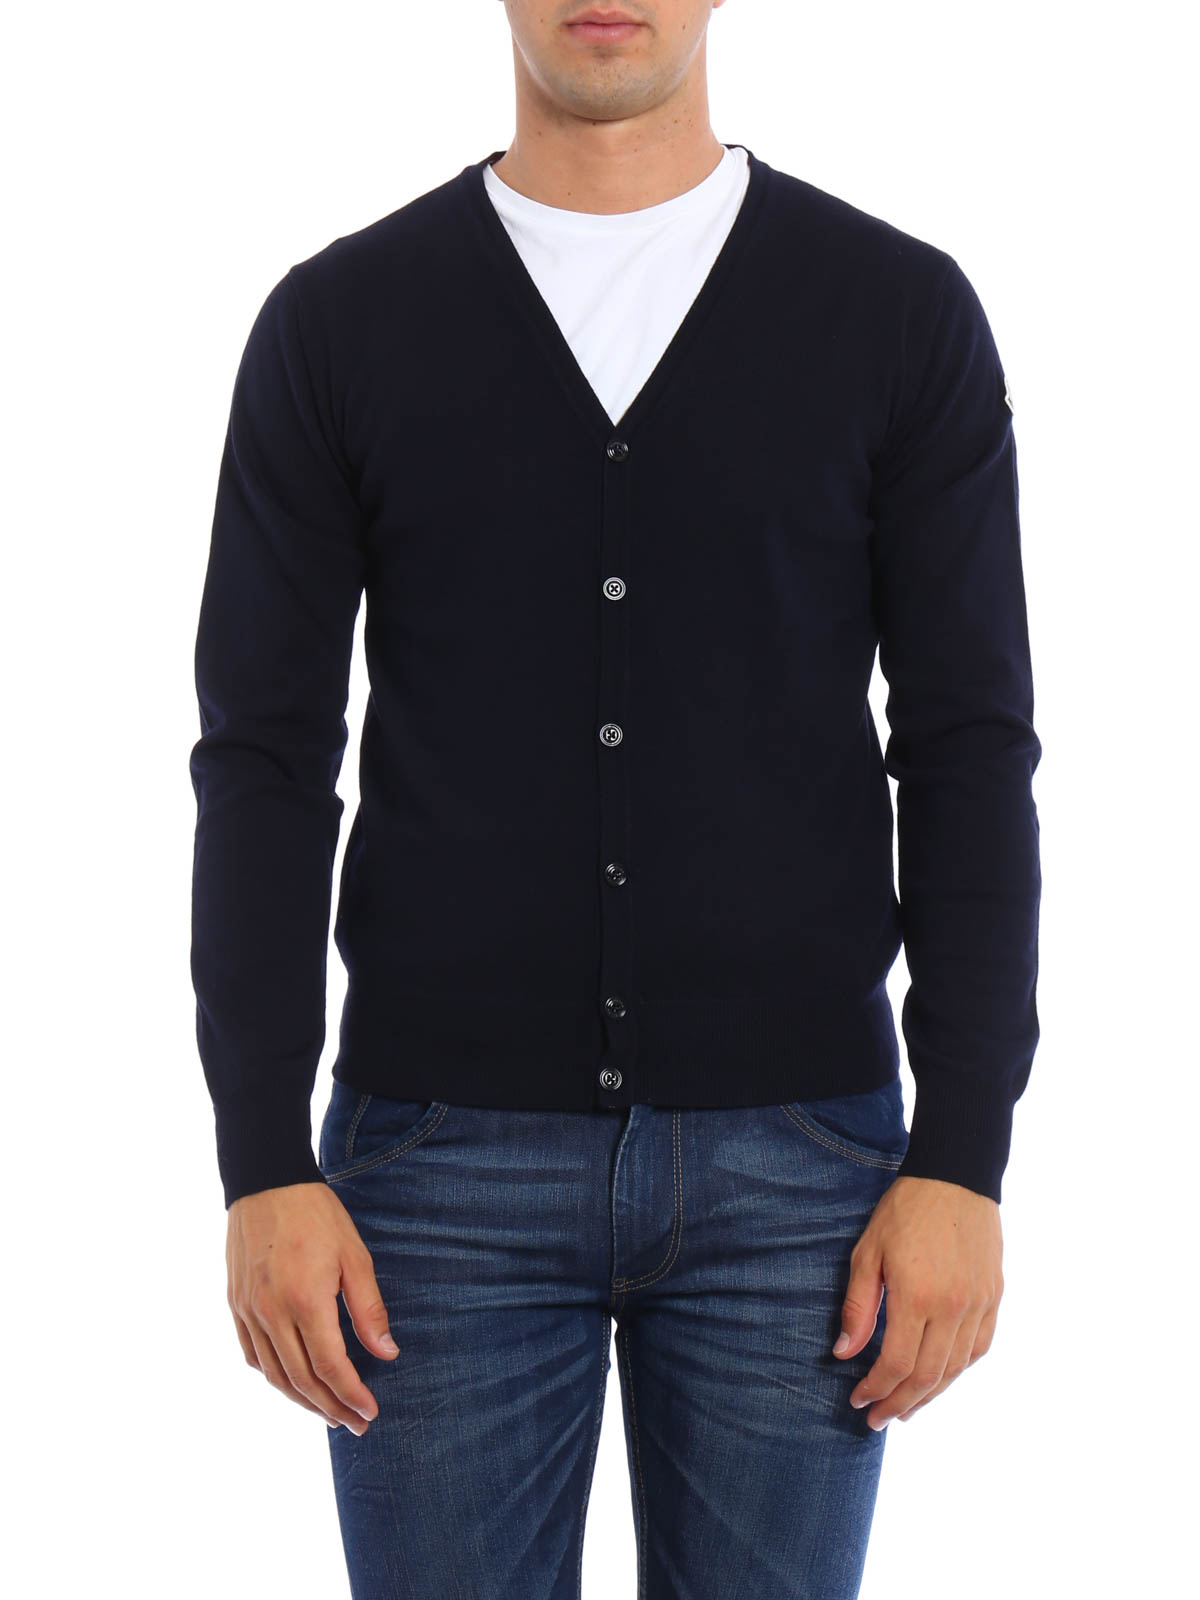 Wool cardigan by Moncler - cardigans | iKRIX